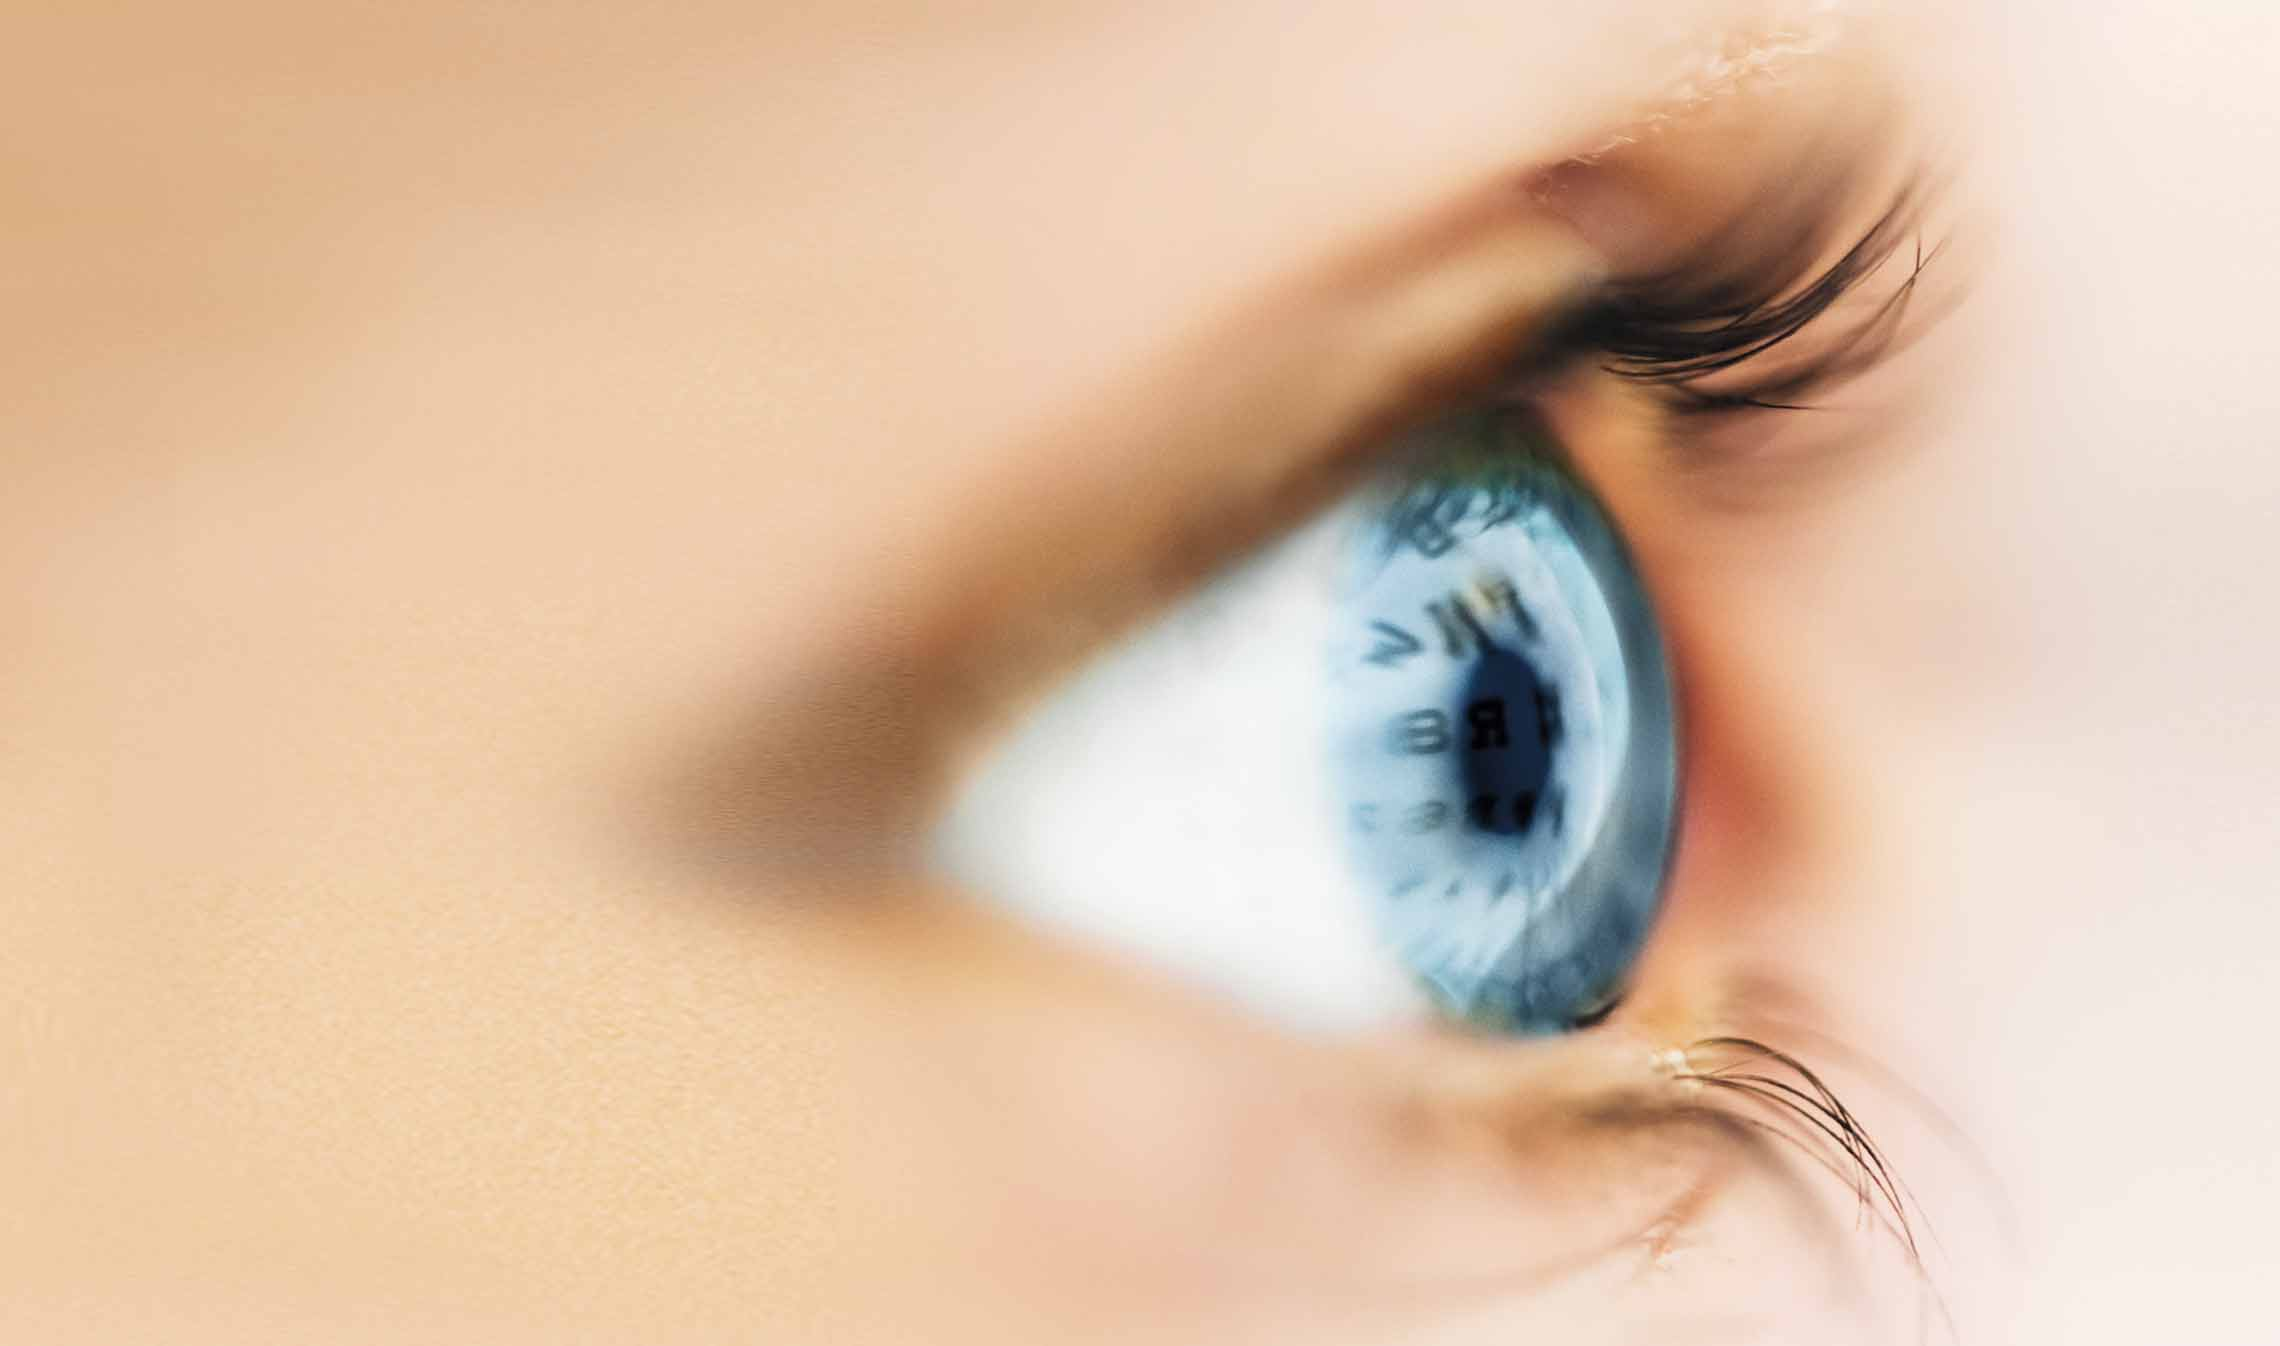 Can stem cells cure blindness?